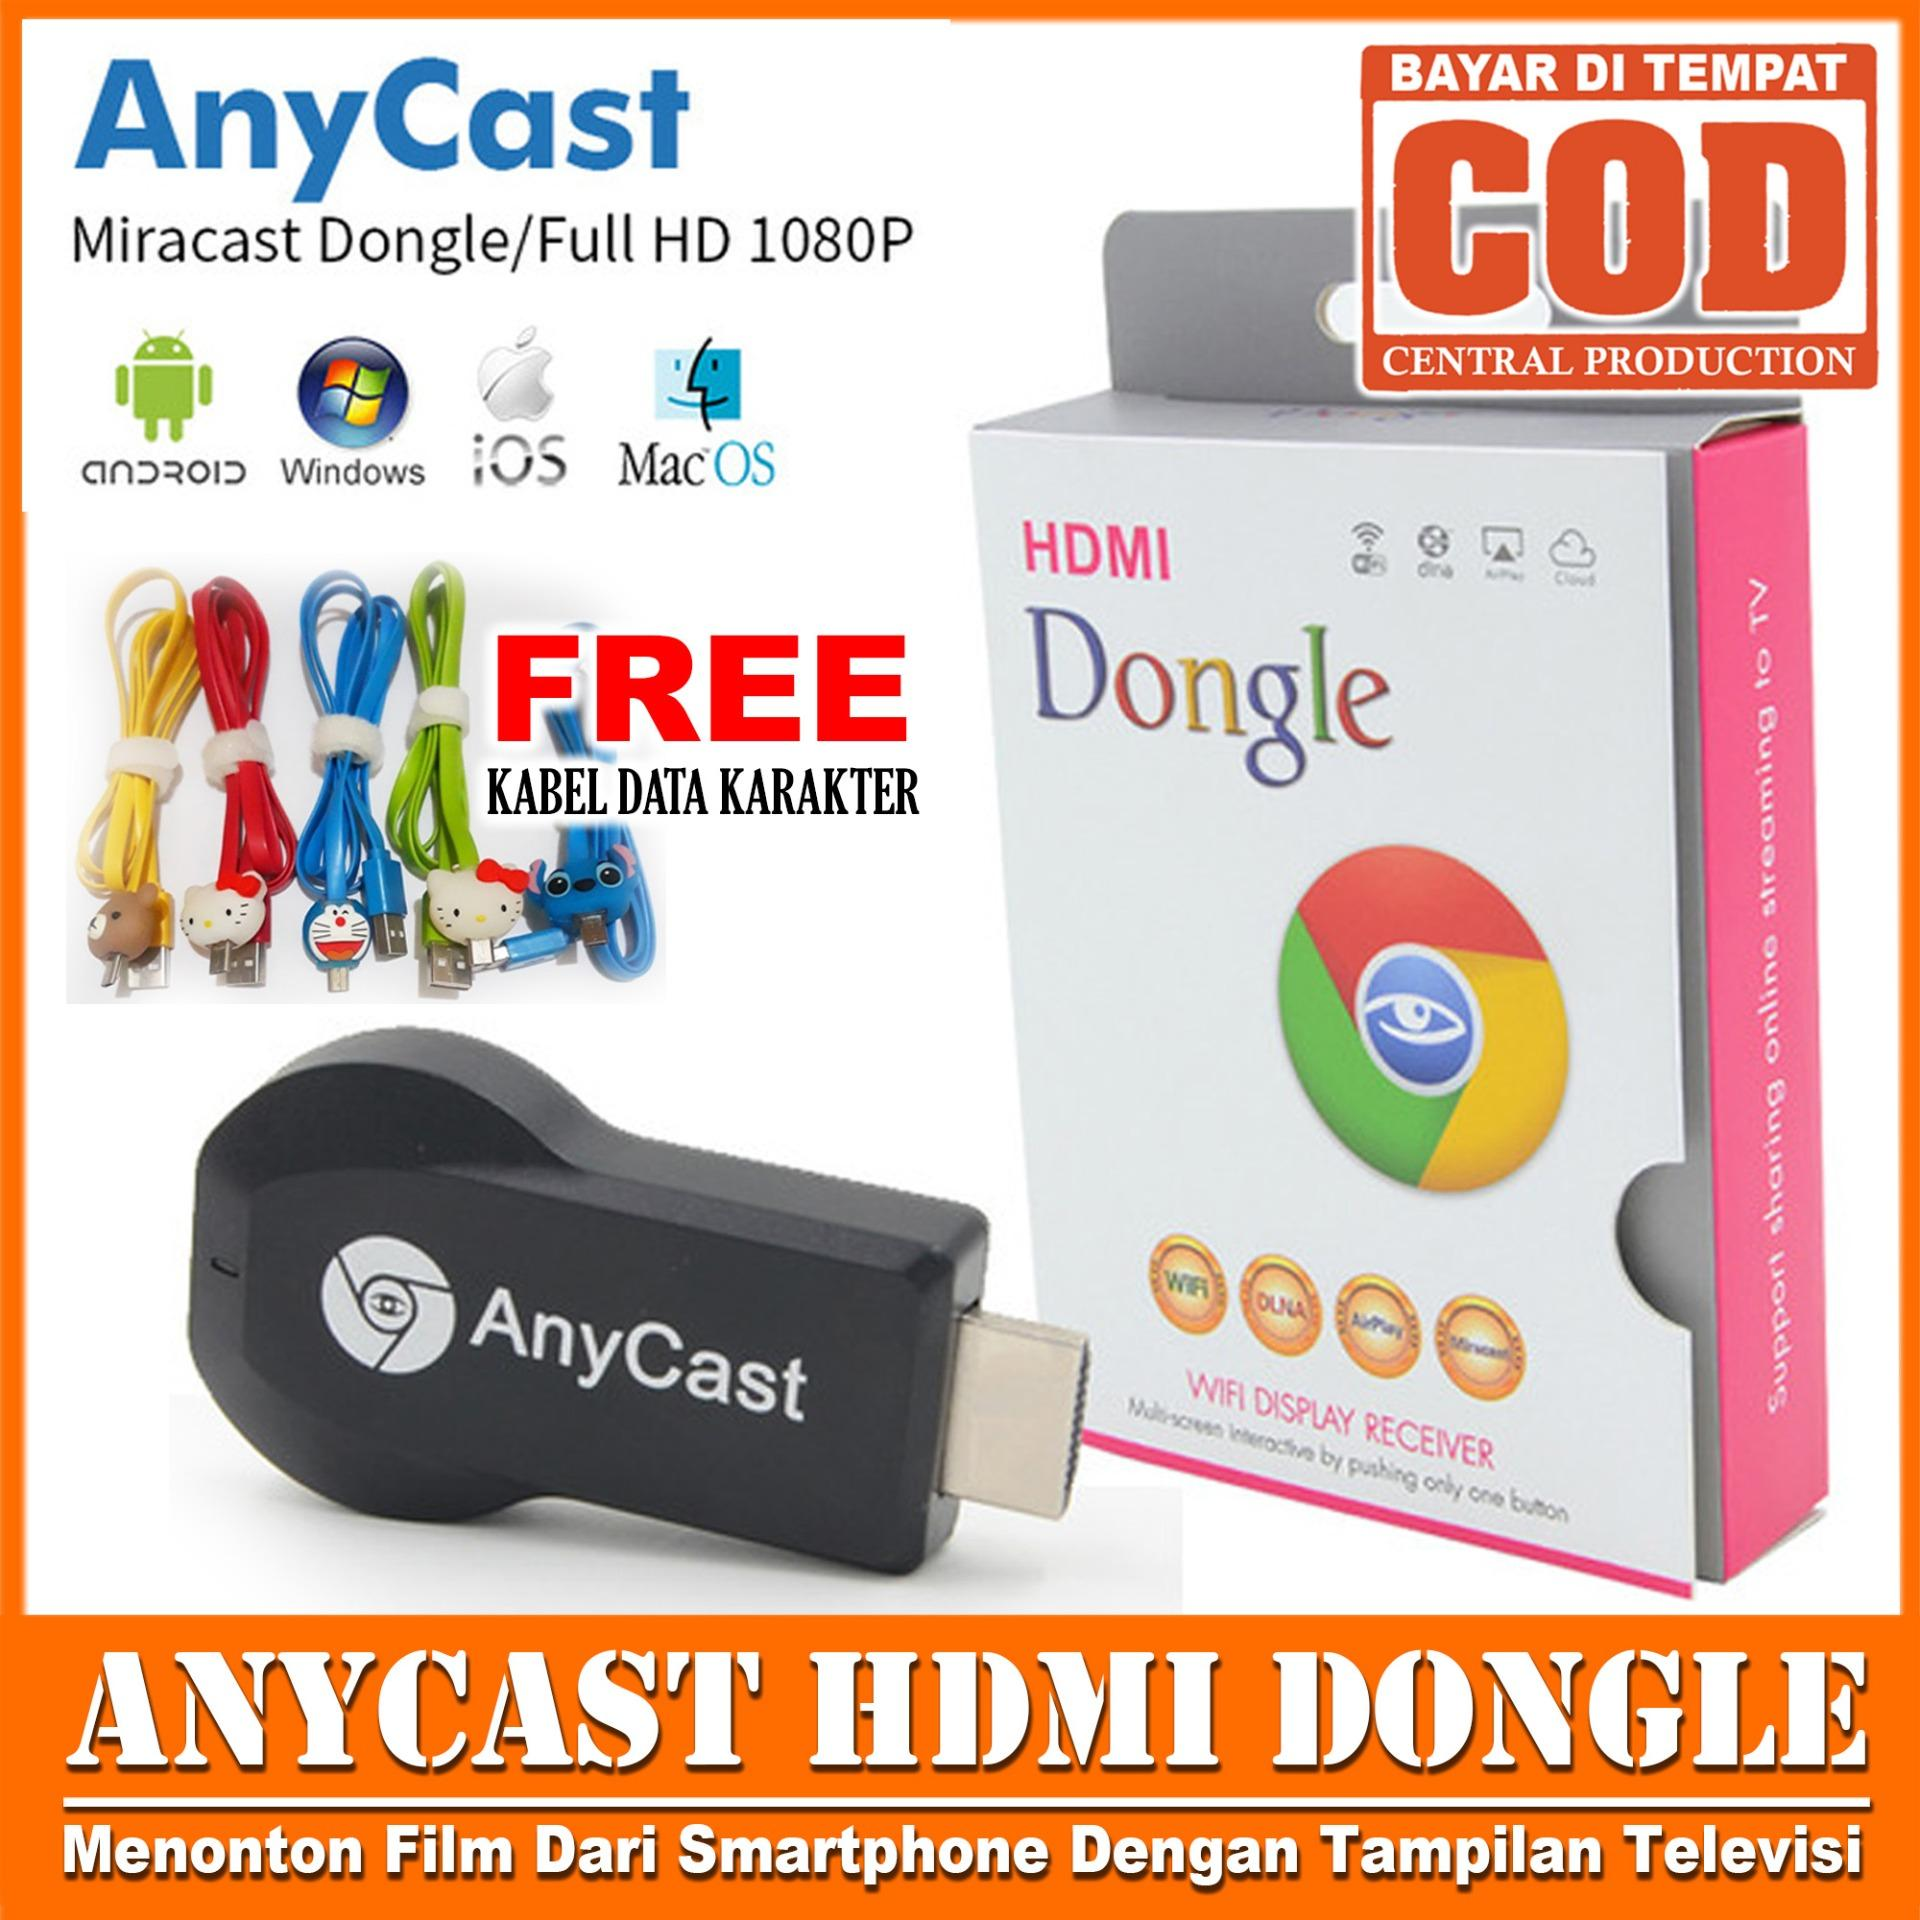 Beli Receiver Hdmi Store Marwanto606 Anycast Dongle Wireless Wifi Display Hd Tv Free Kabel Data Karakter